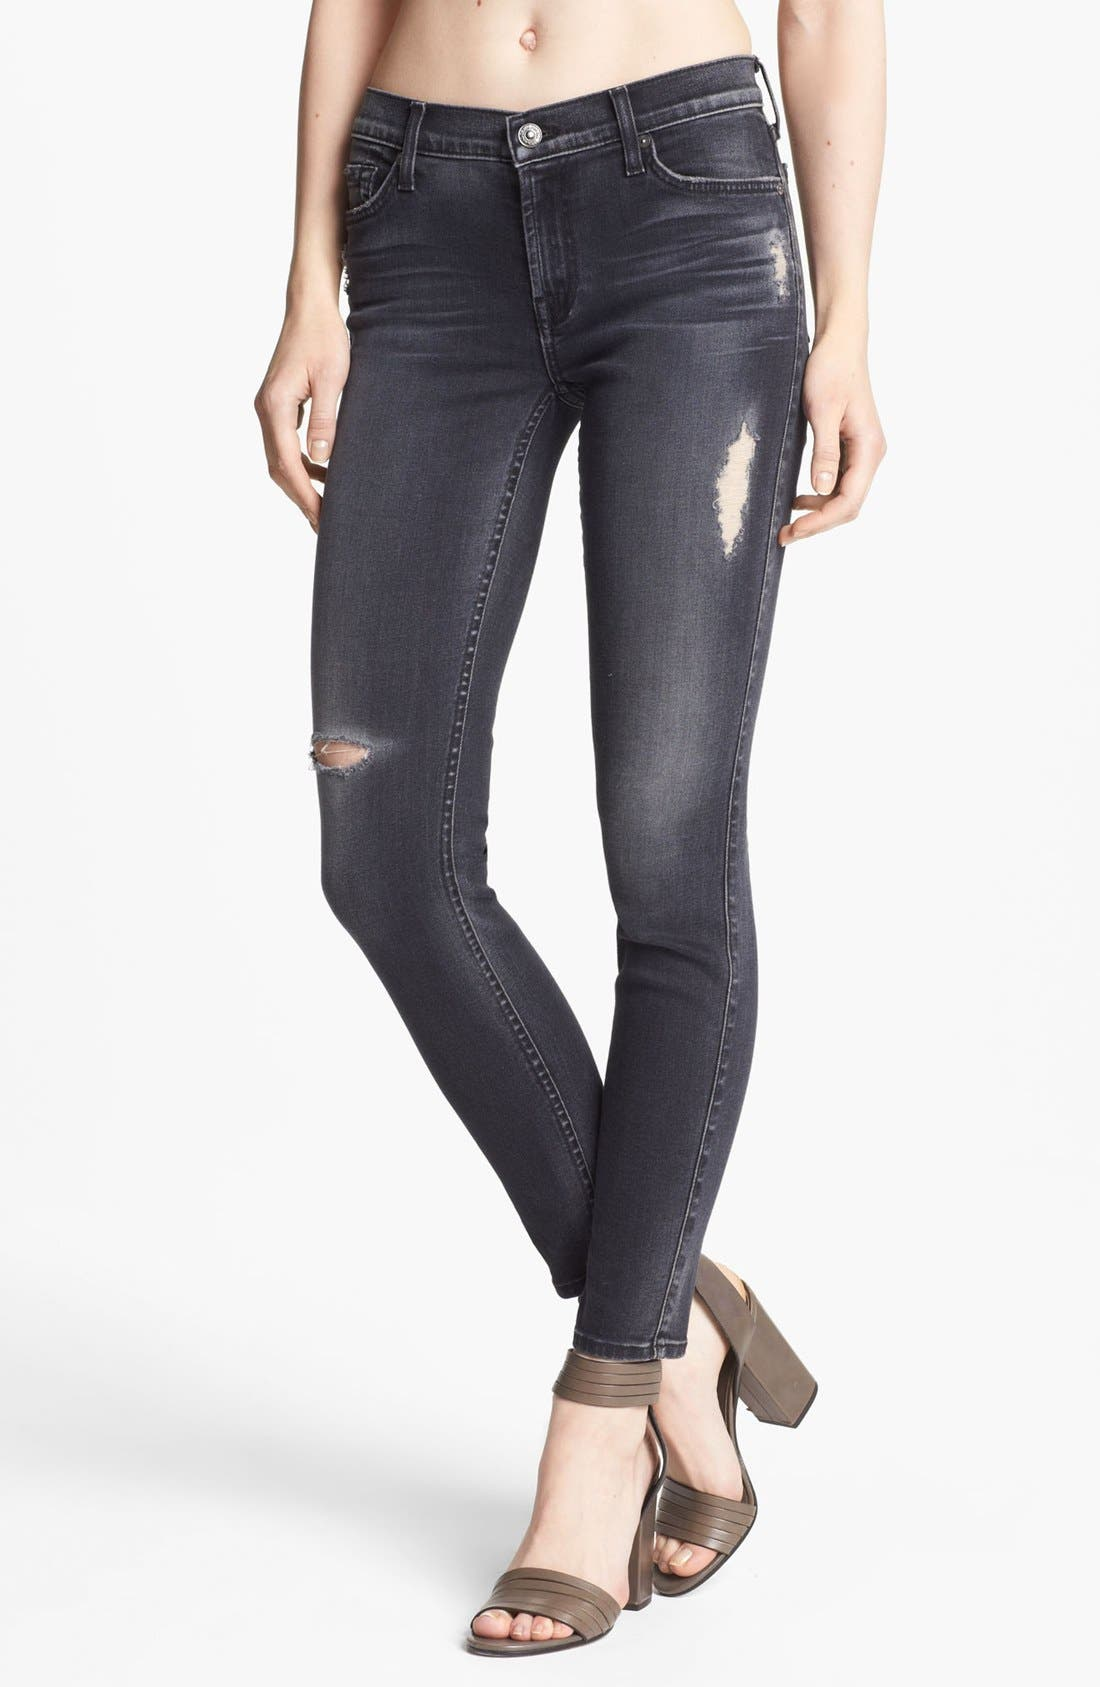 Alternate Image 1 Selected - 7 For All Mankind® 'The Skinny 29' Stretch Jeans (Blue Black Destroyed)